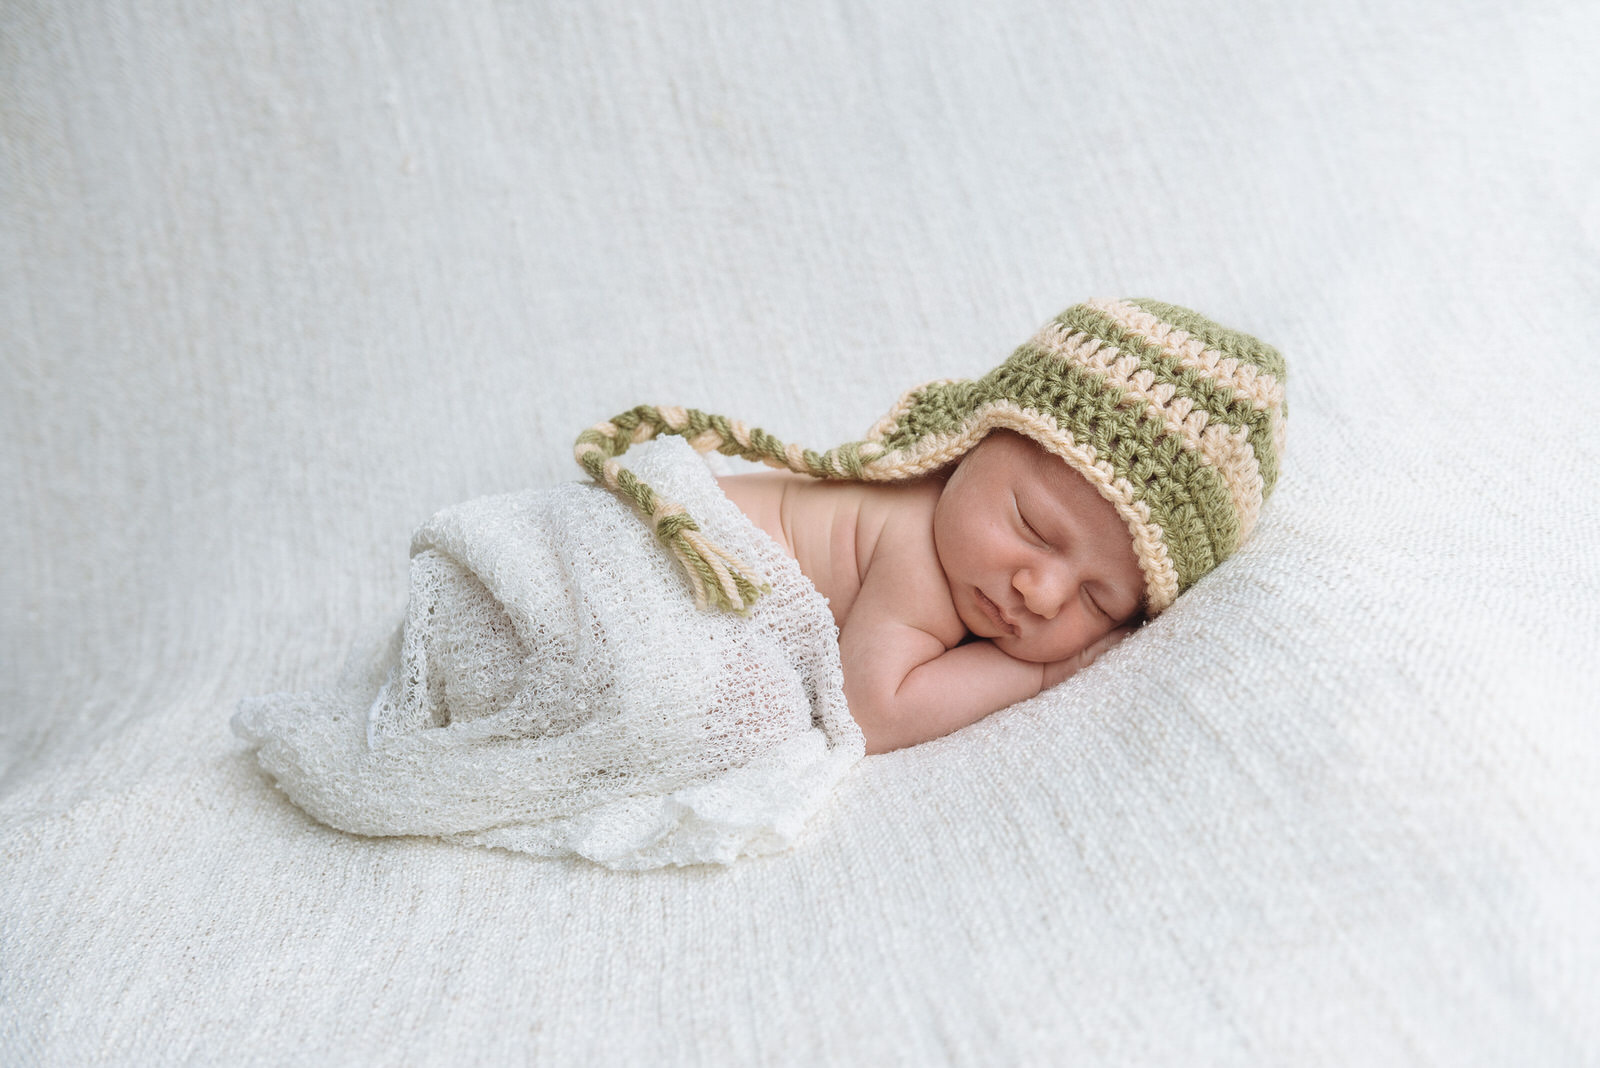 Newborn Photography Uckfield